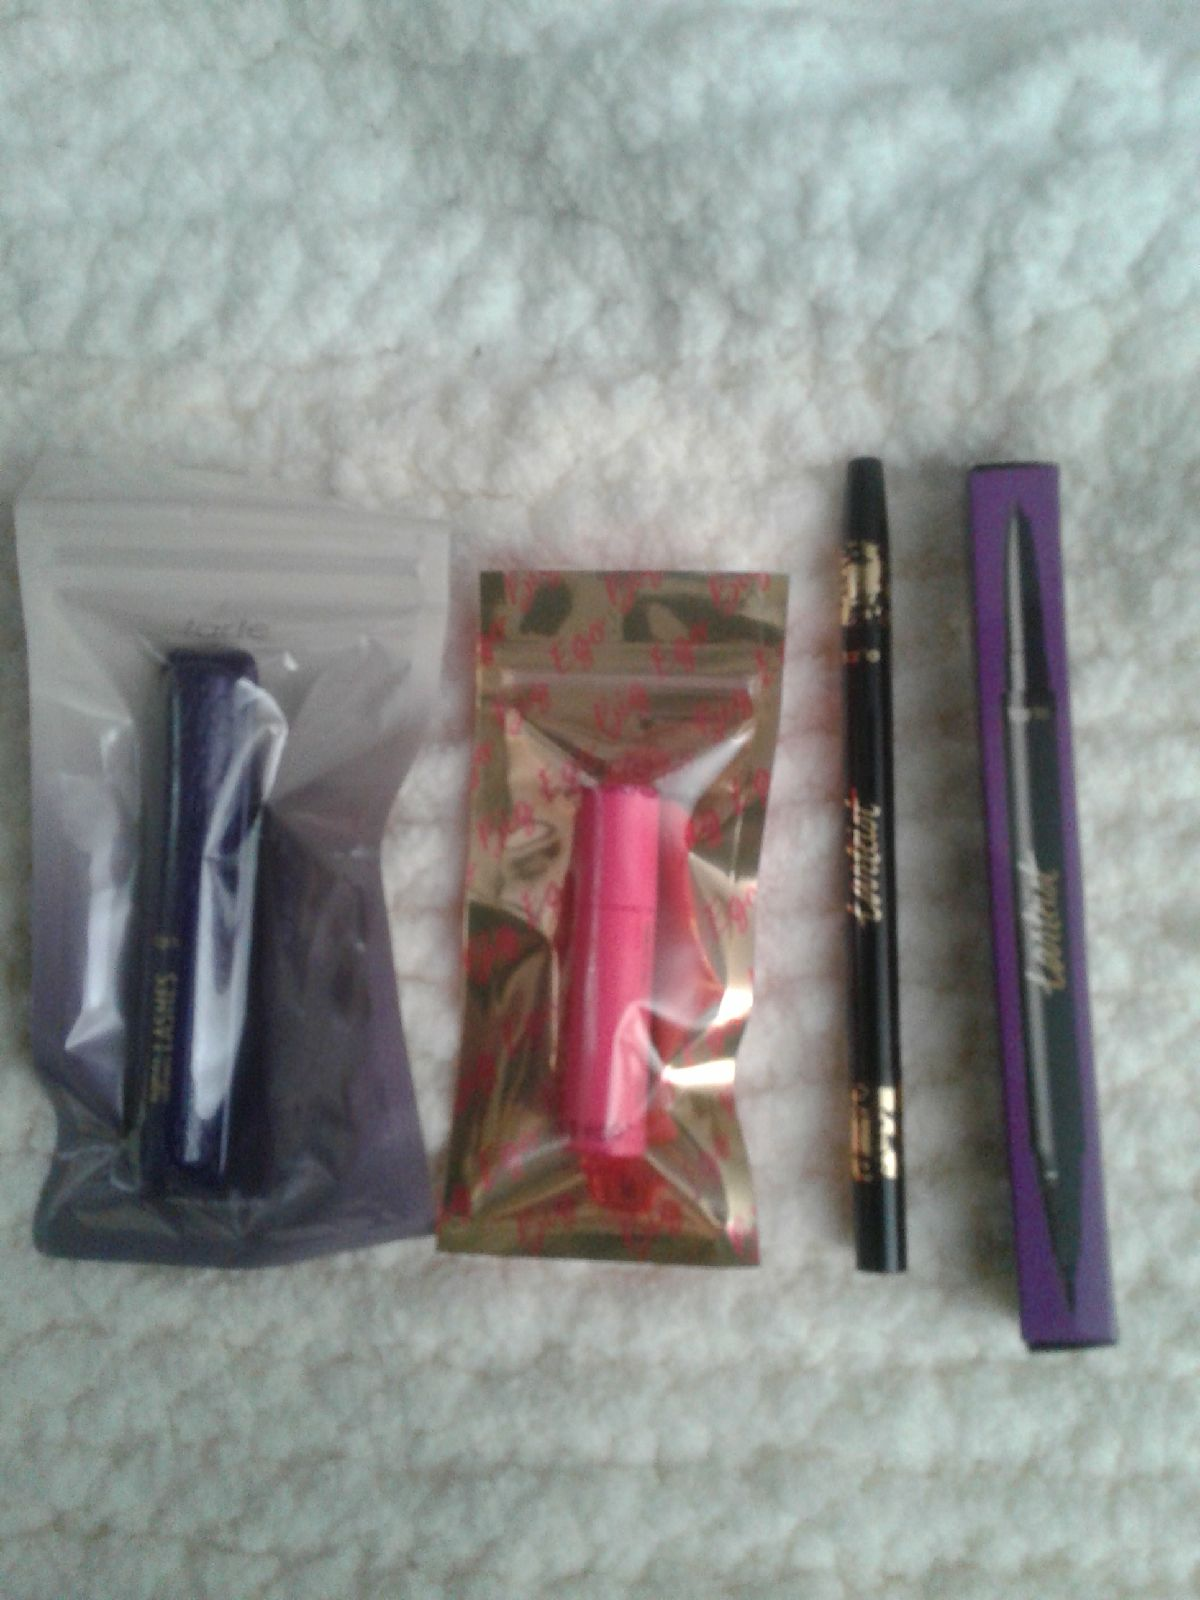 NEW TarteEyeliner& 2 travelsize Mascara